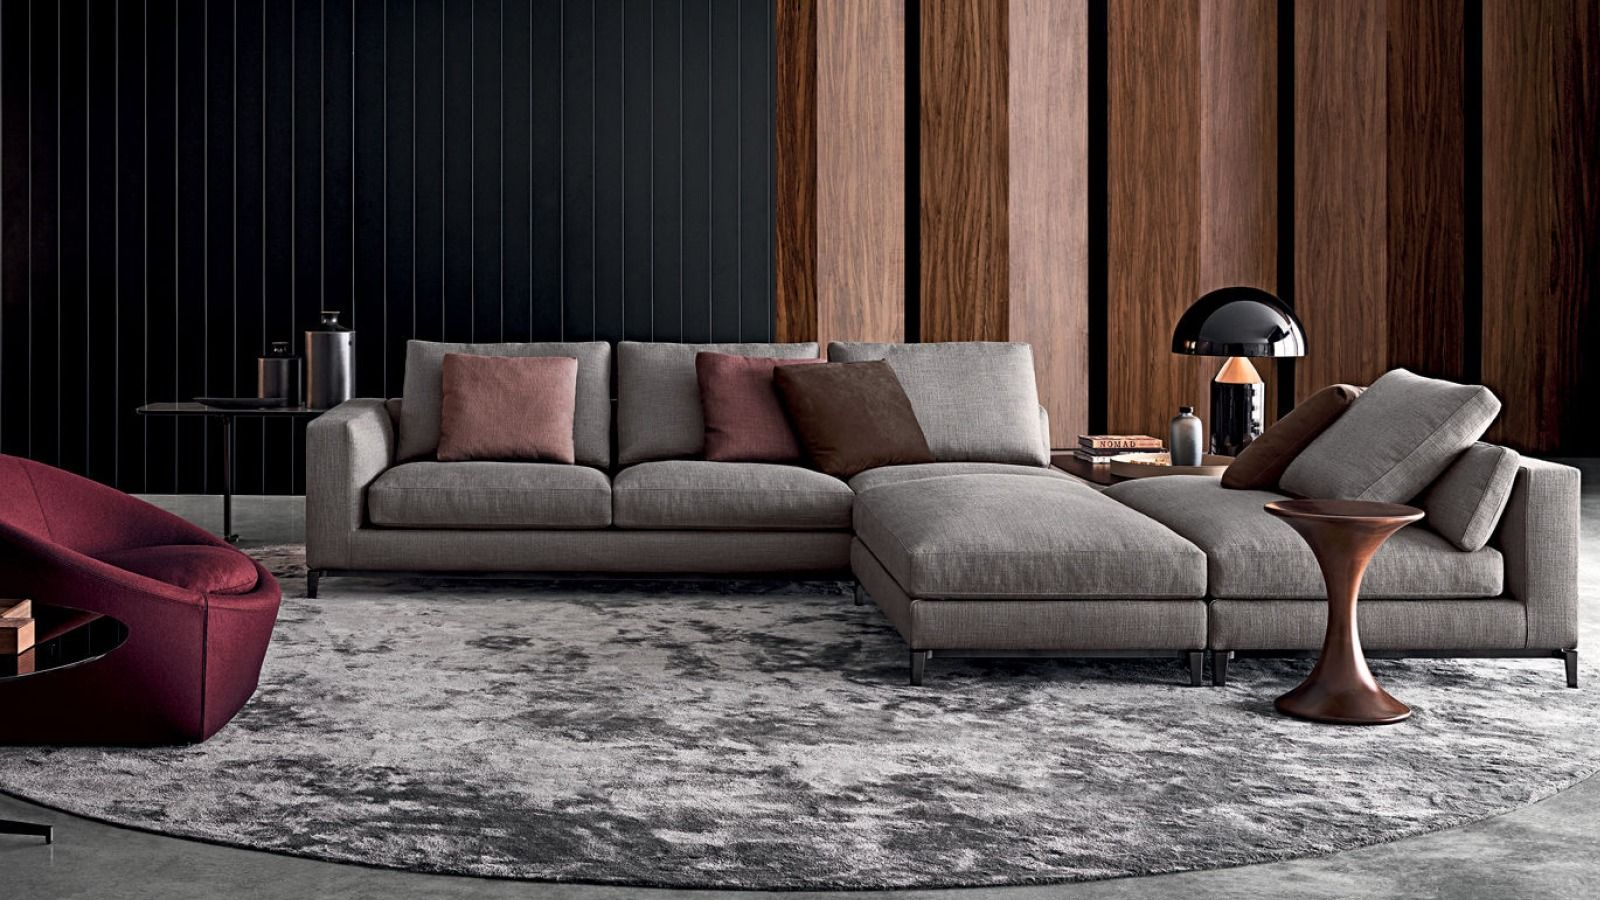 Lounge Suites Perth   Sofas, Couches & Lounges - Contempo   Chair ...